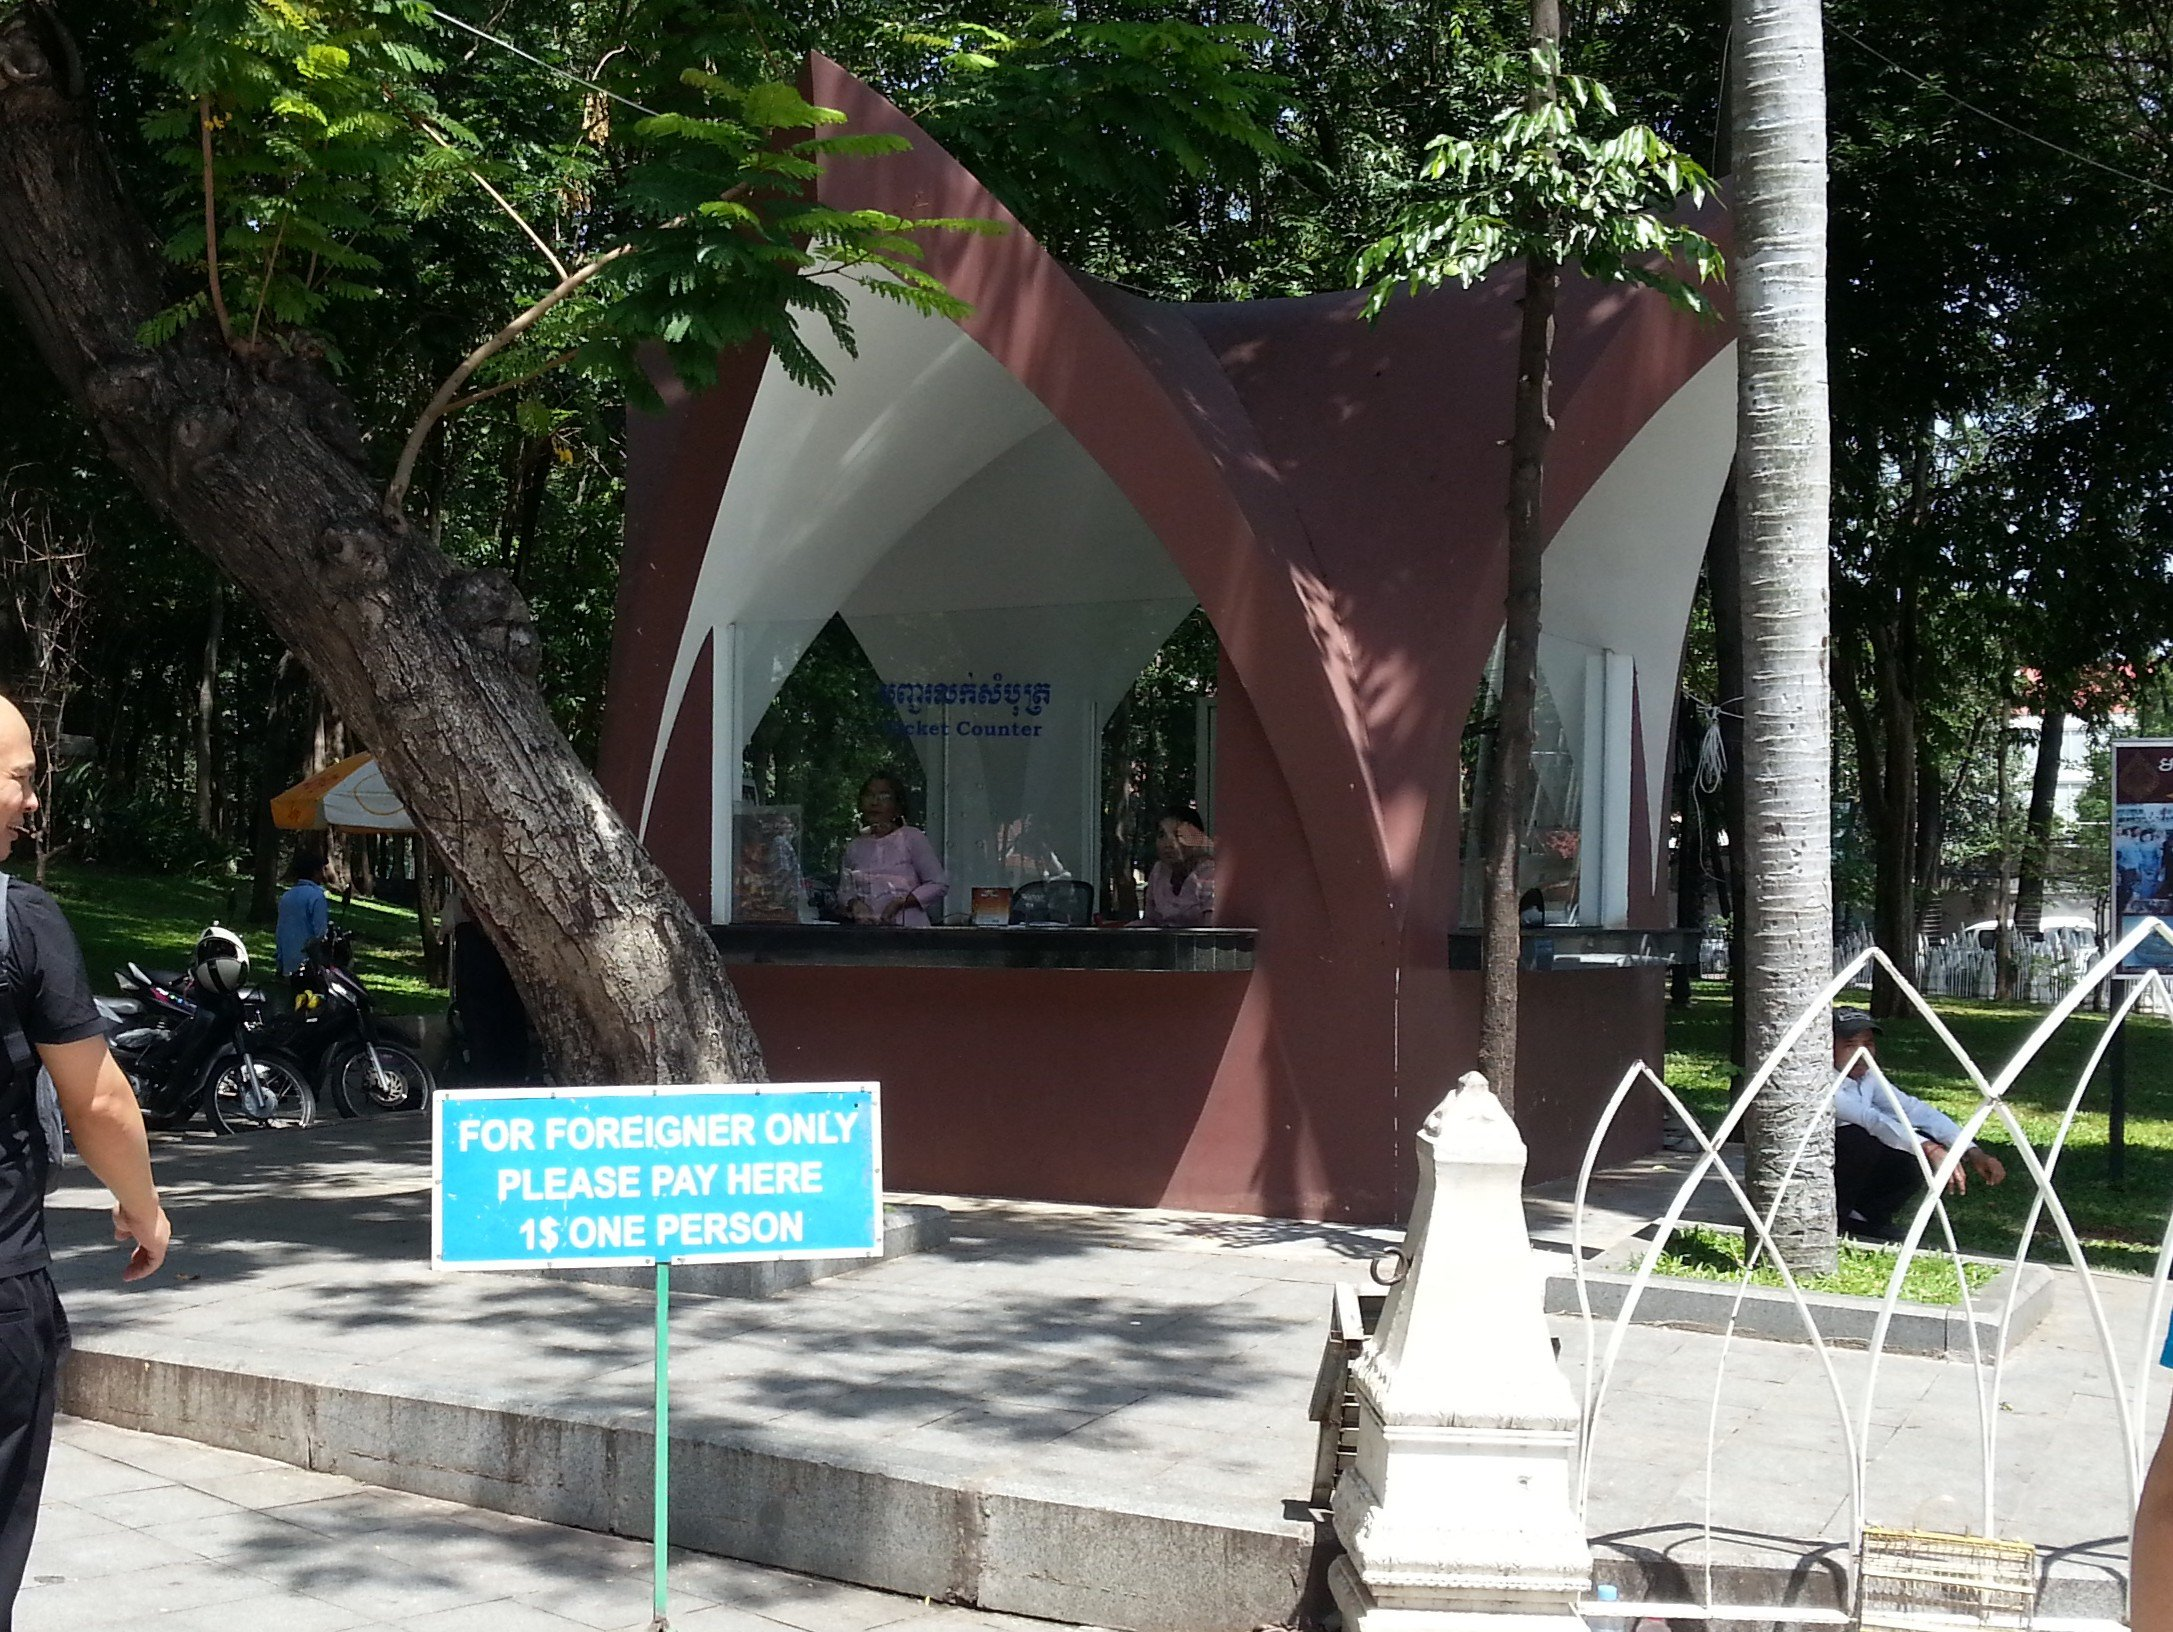 Ticket booth at Wat Phnom